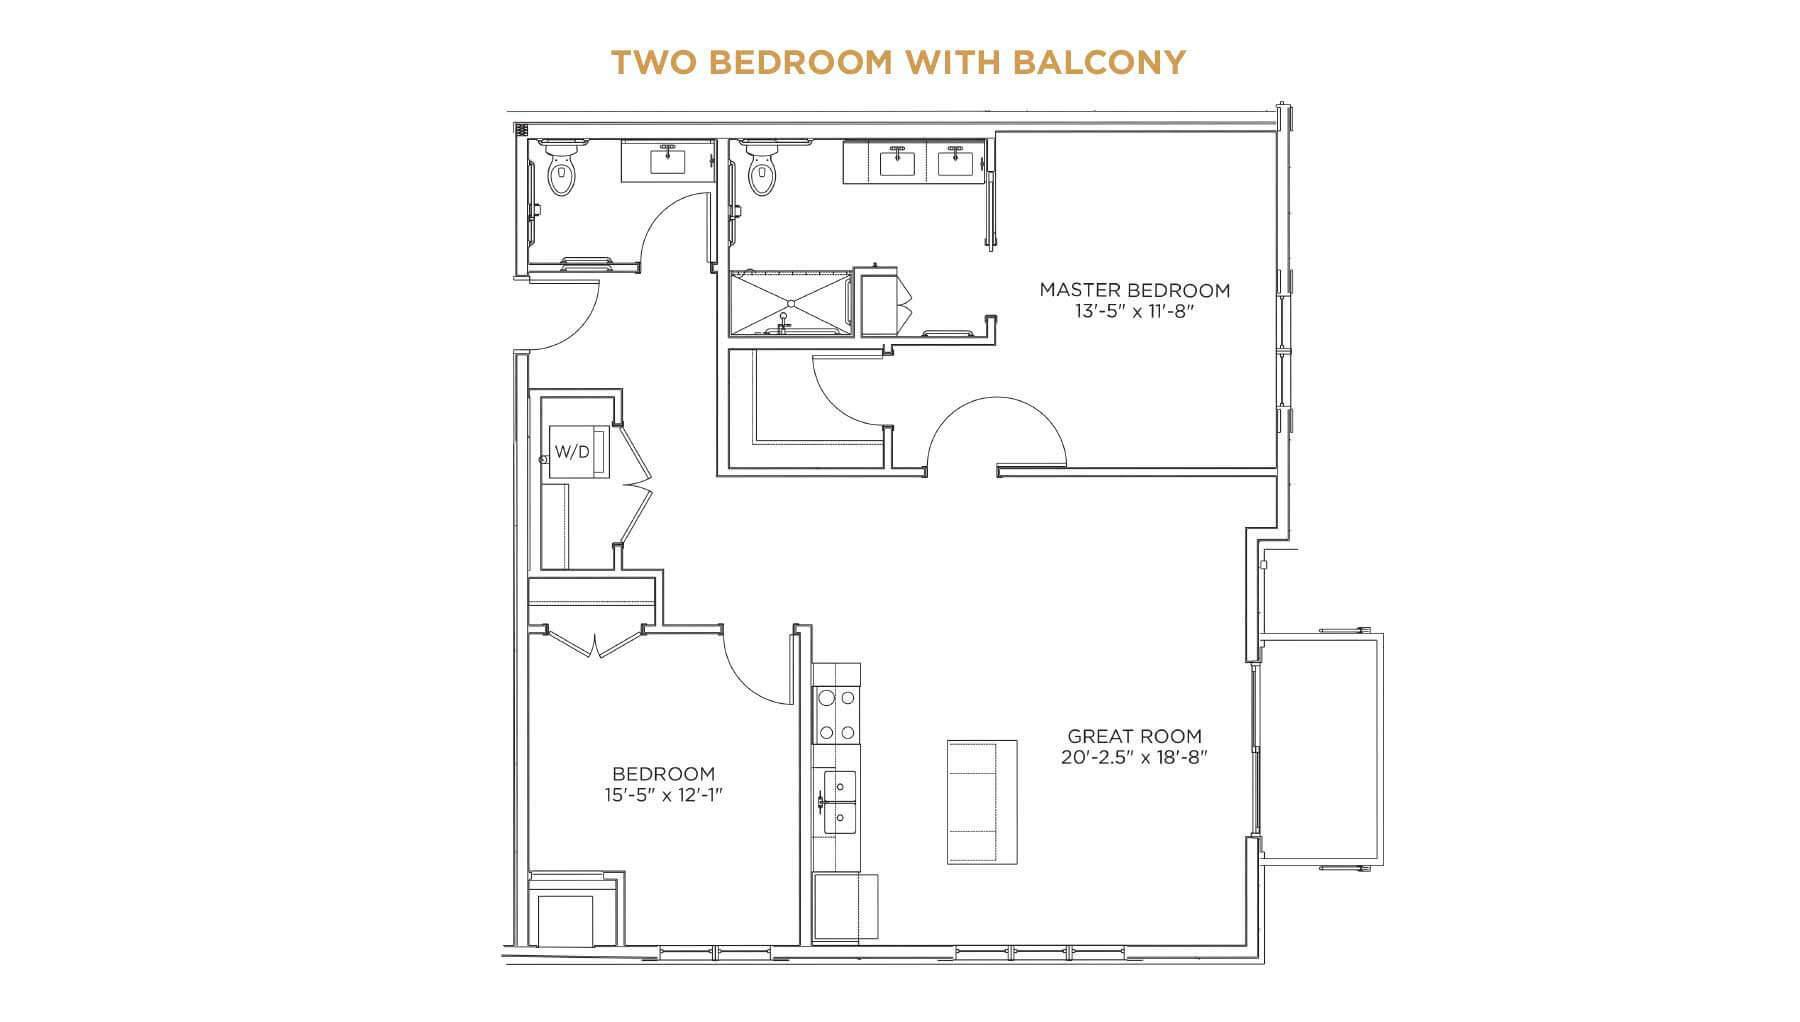 Two Bedroom with Balcony Floor Plan - senior living 55 and over Cedar Rapids - Grand Living at Indian Creek